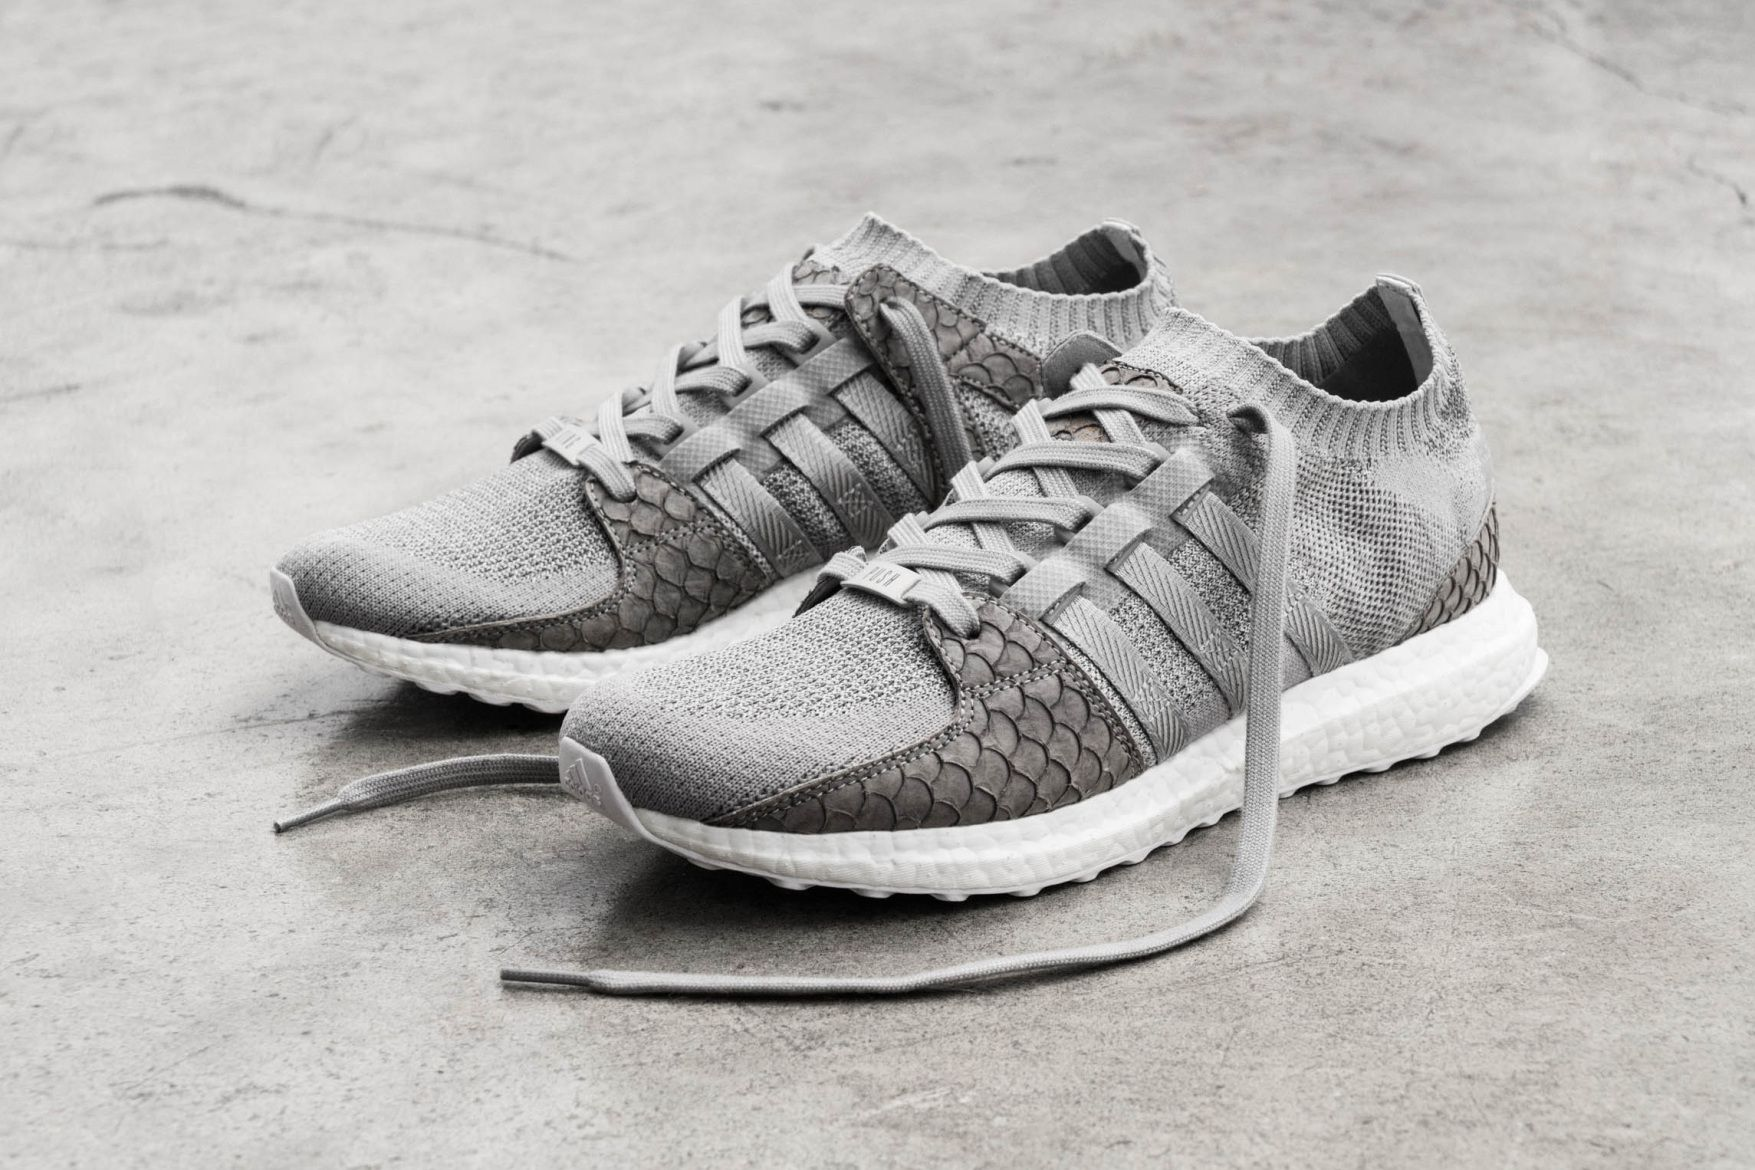 8c7f72aee0c adidas Originals Officially Reveals Its